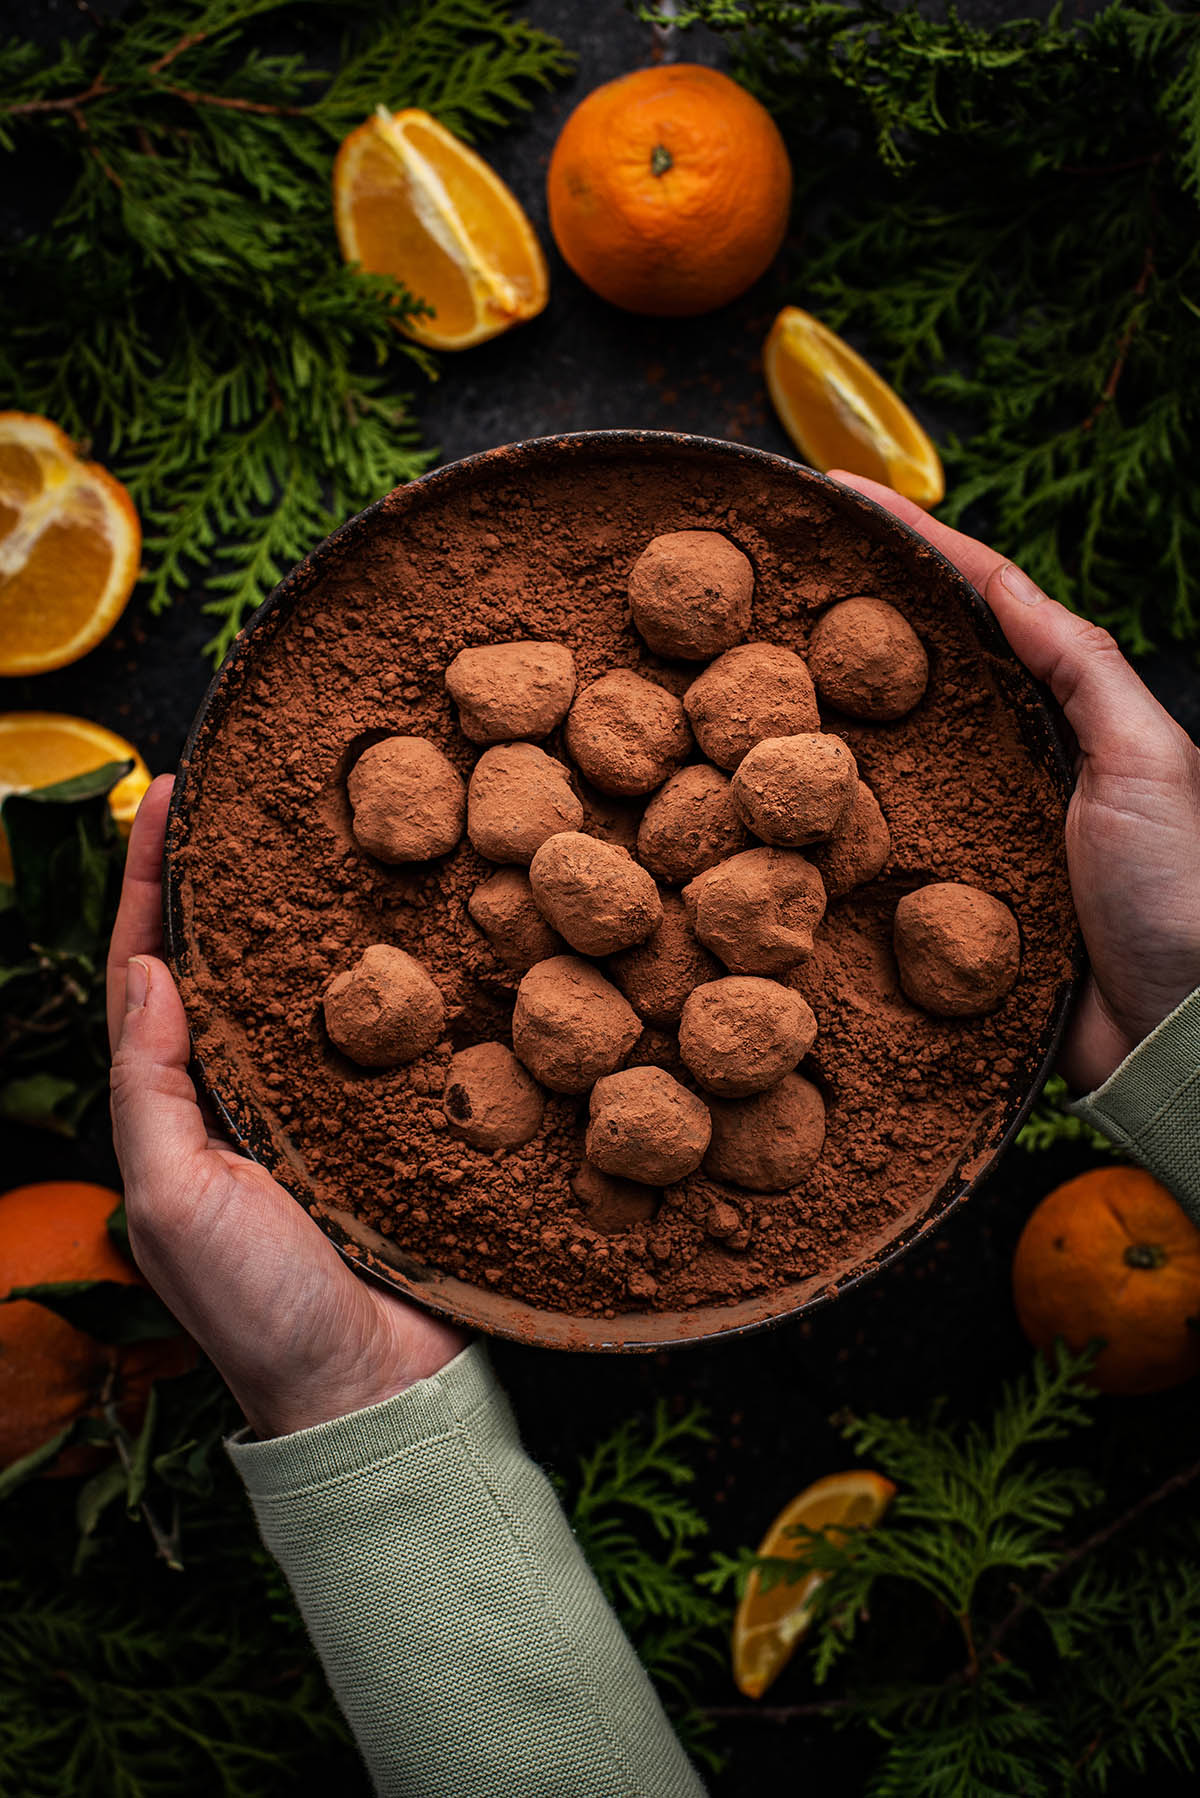 Hands holding a bowl of truffles.